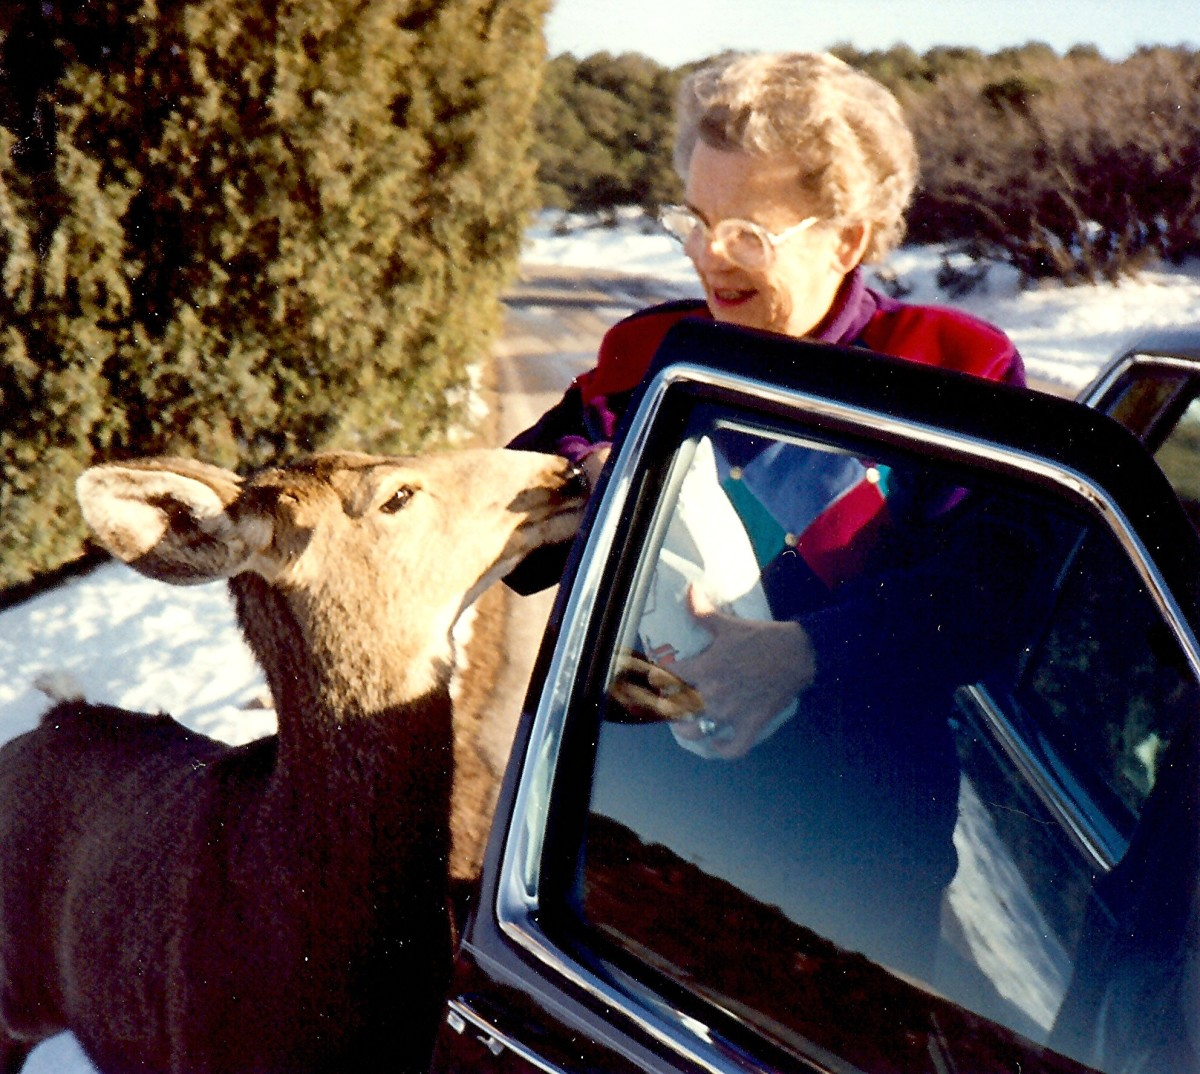 My mother feeding a deer